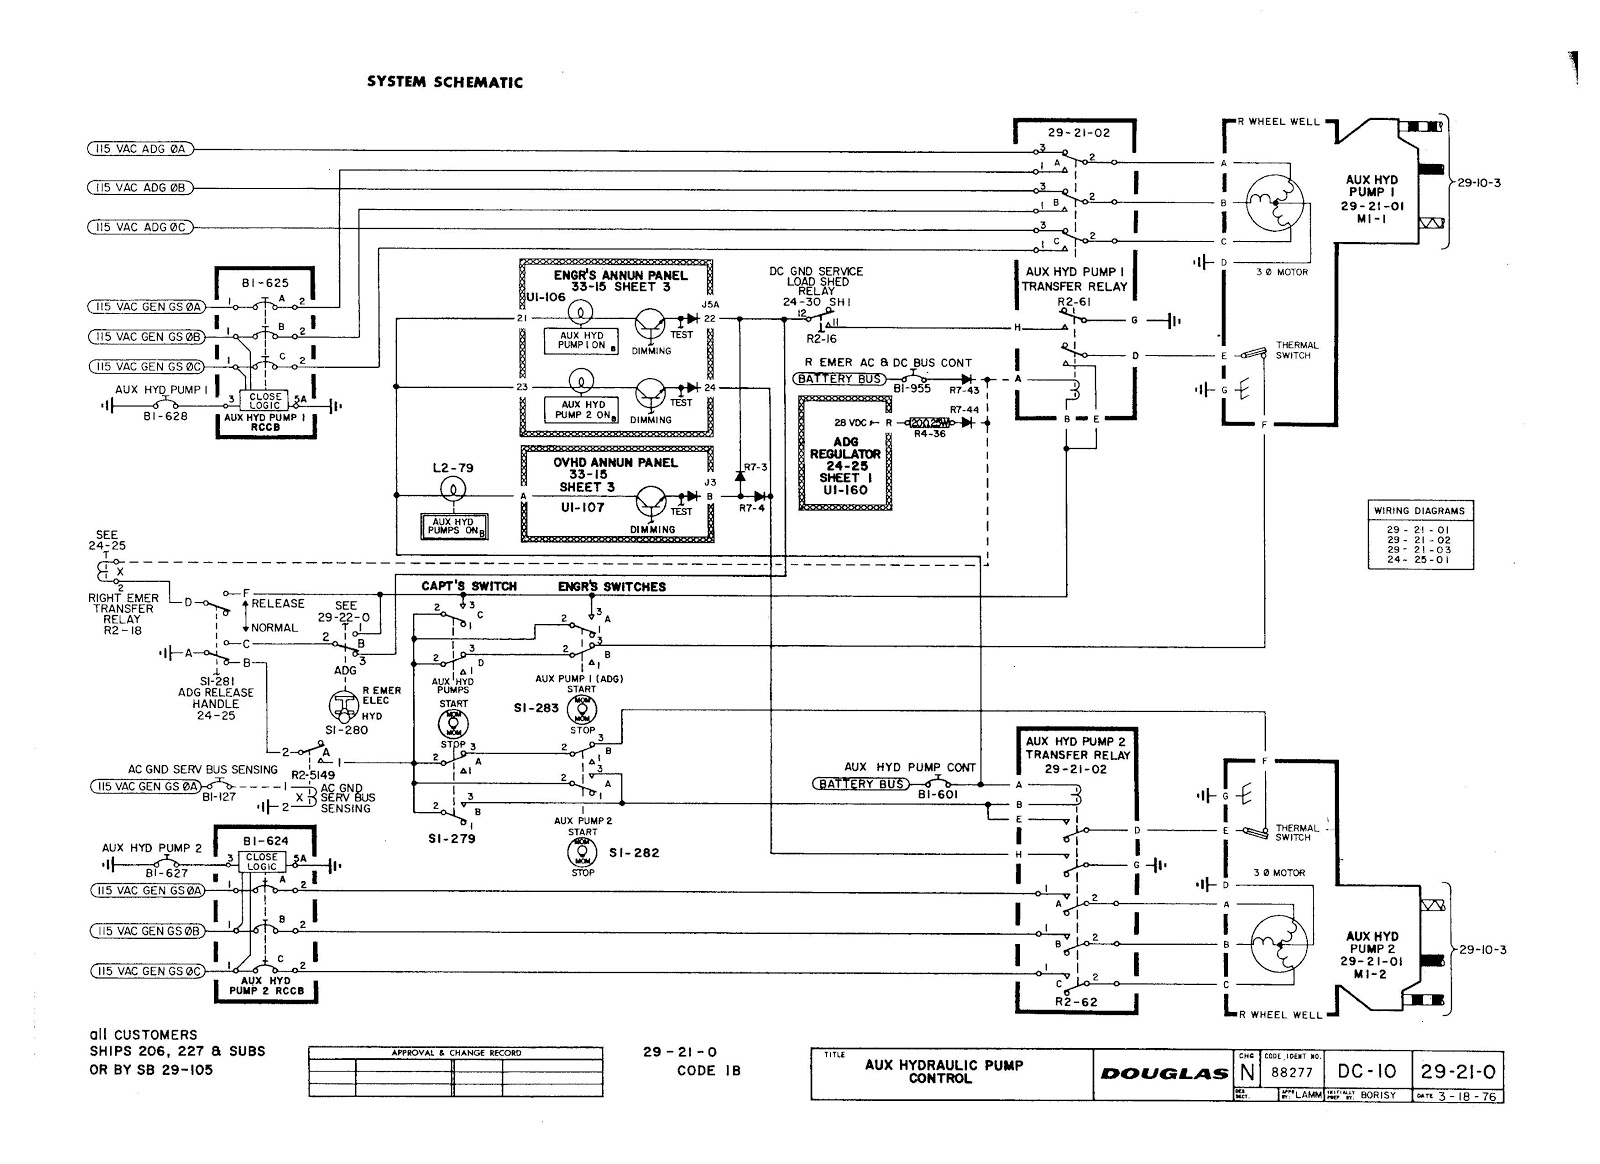 wiring diagram aircraft drawings wiring diagram expert experimental aircraft wiring diagrams aircraft wiring diagrams [ 1600 x 1164 Pixel ]